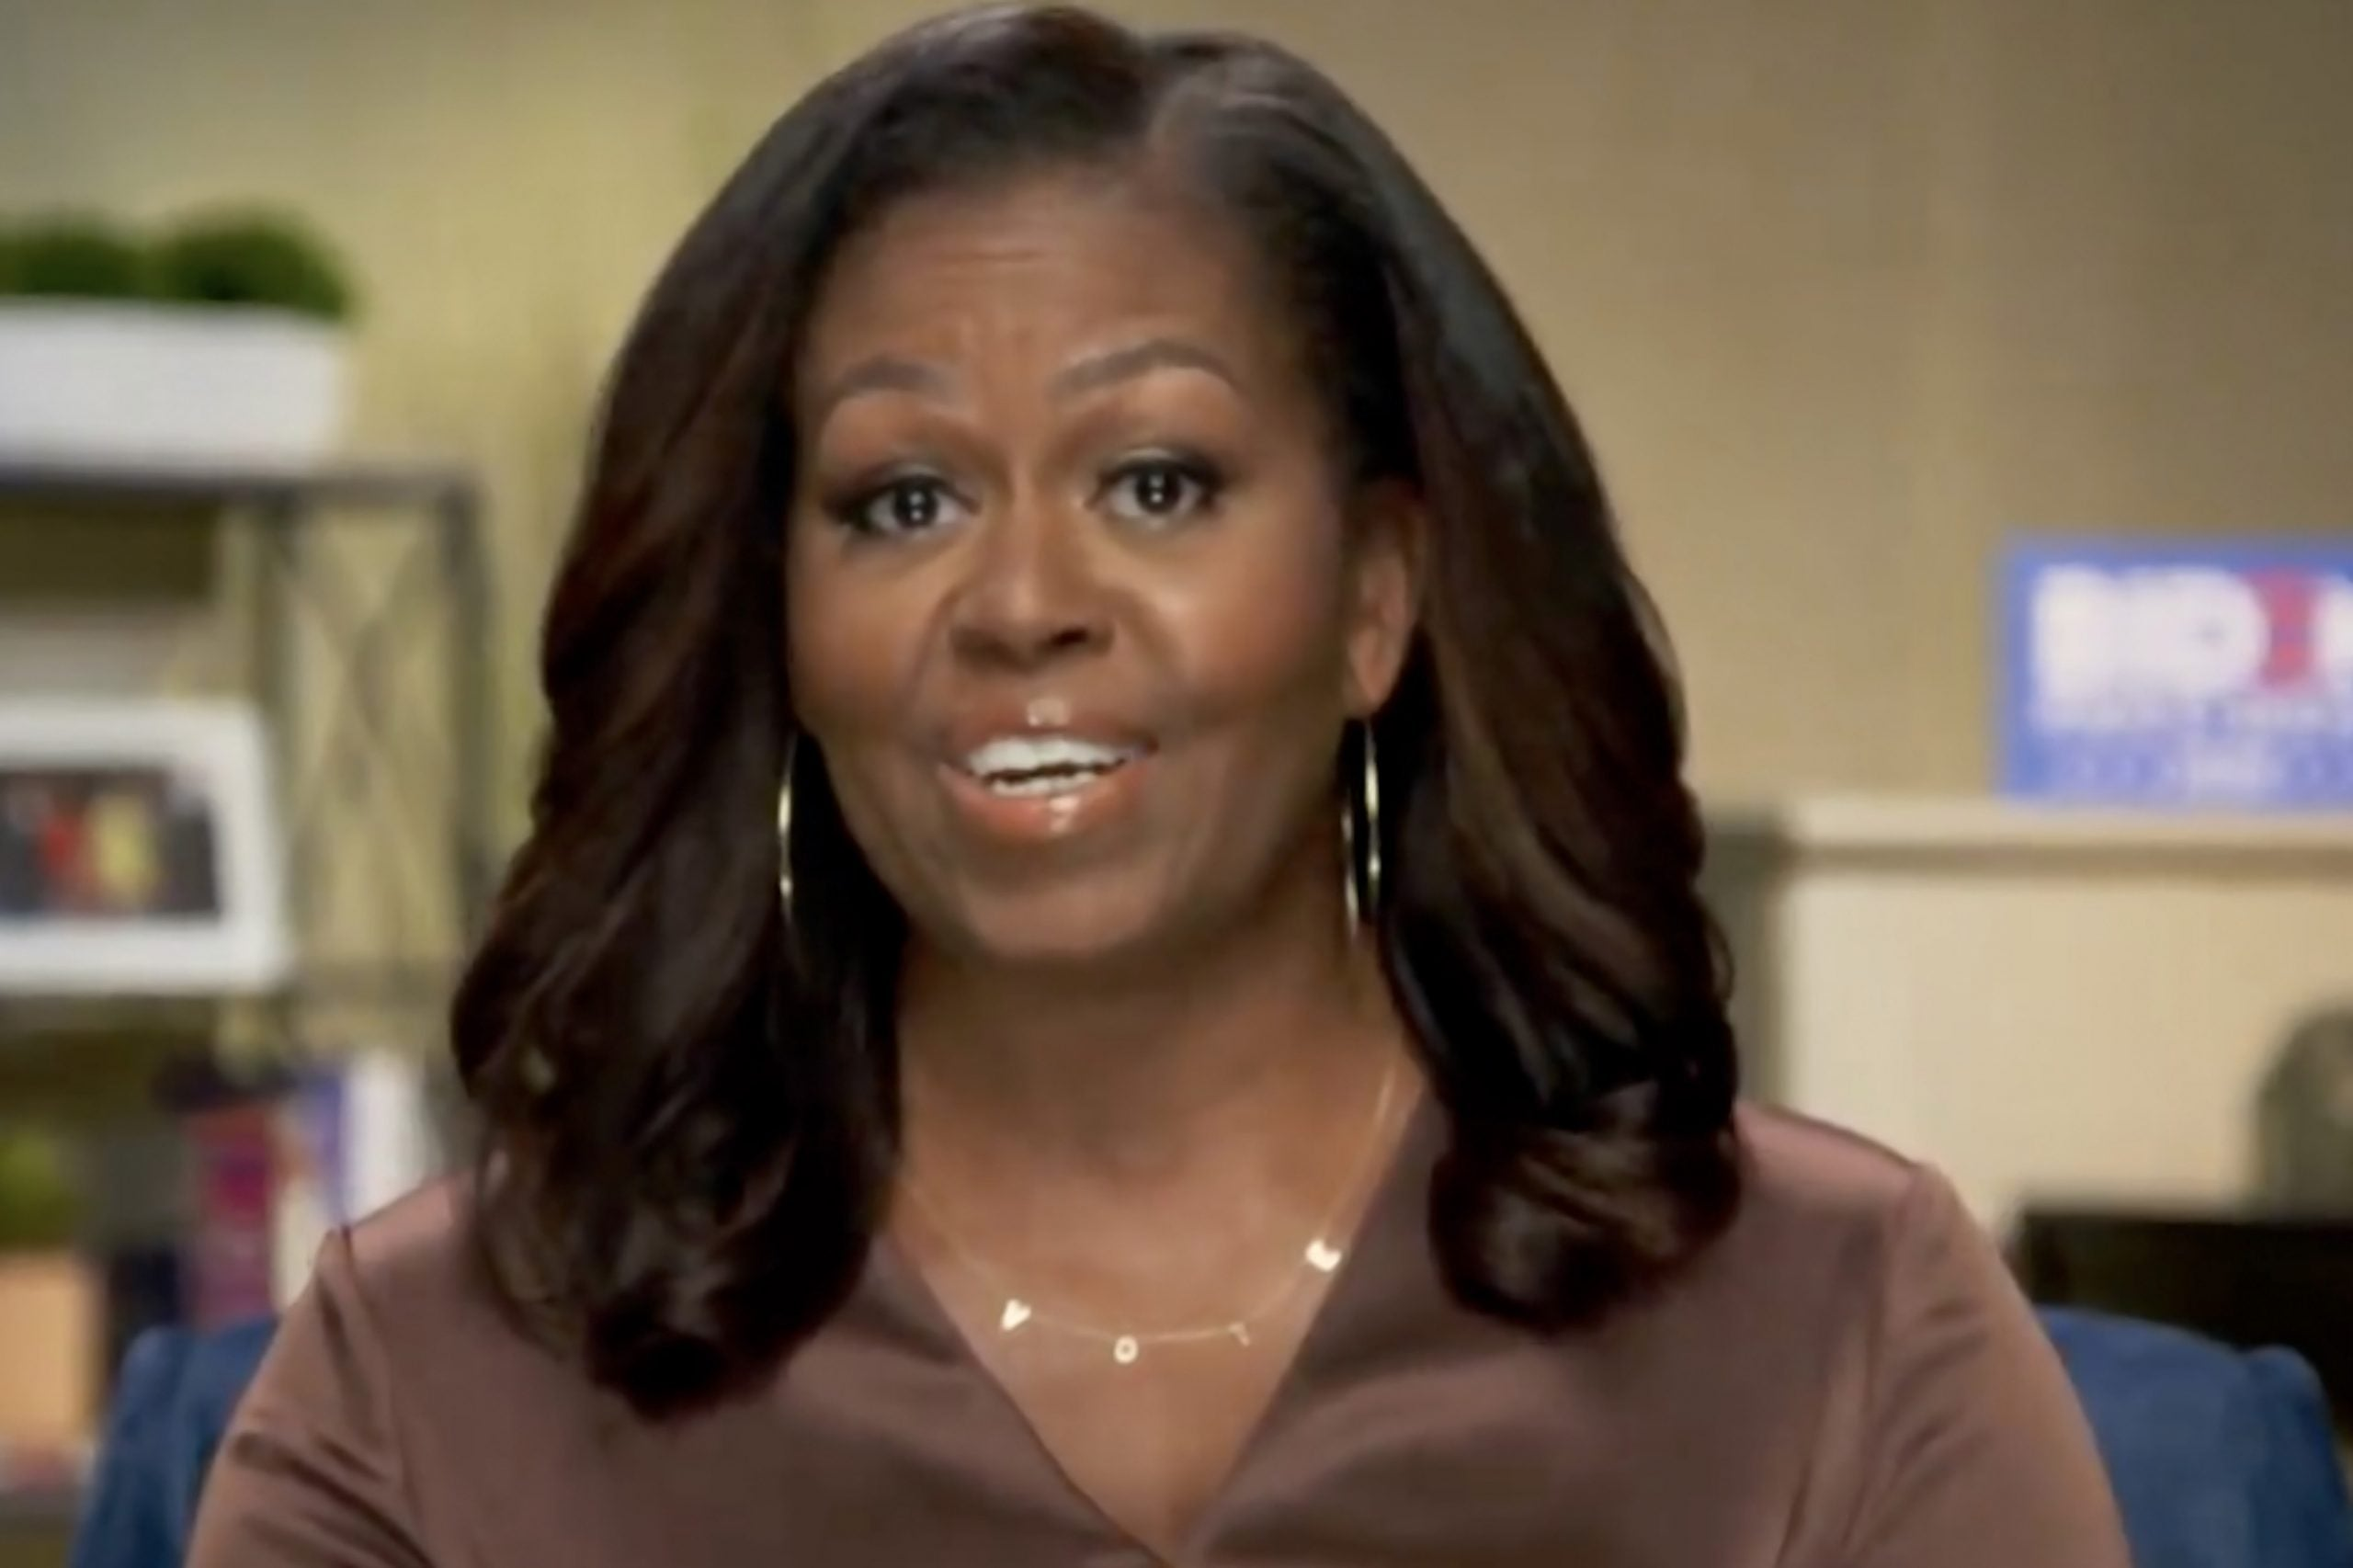 Michelle Obama appears in video at DNC